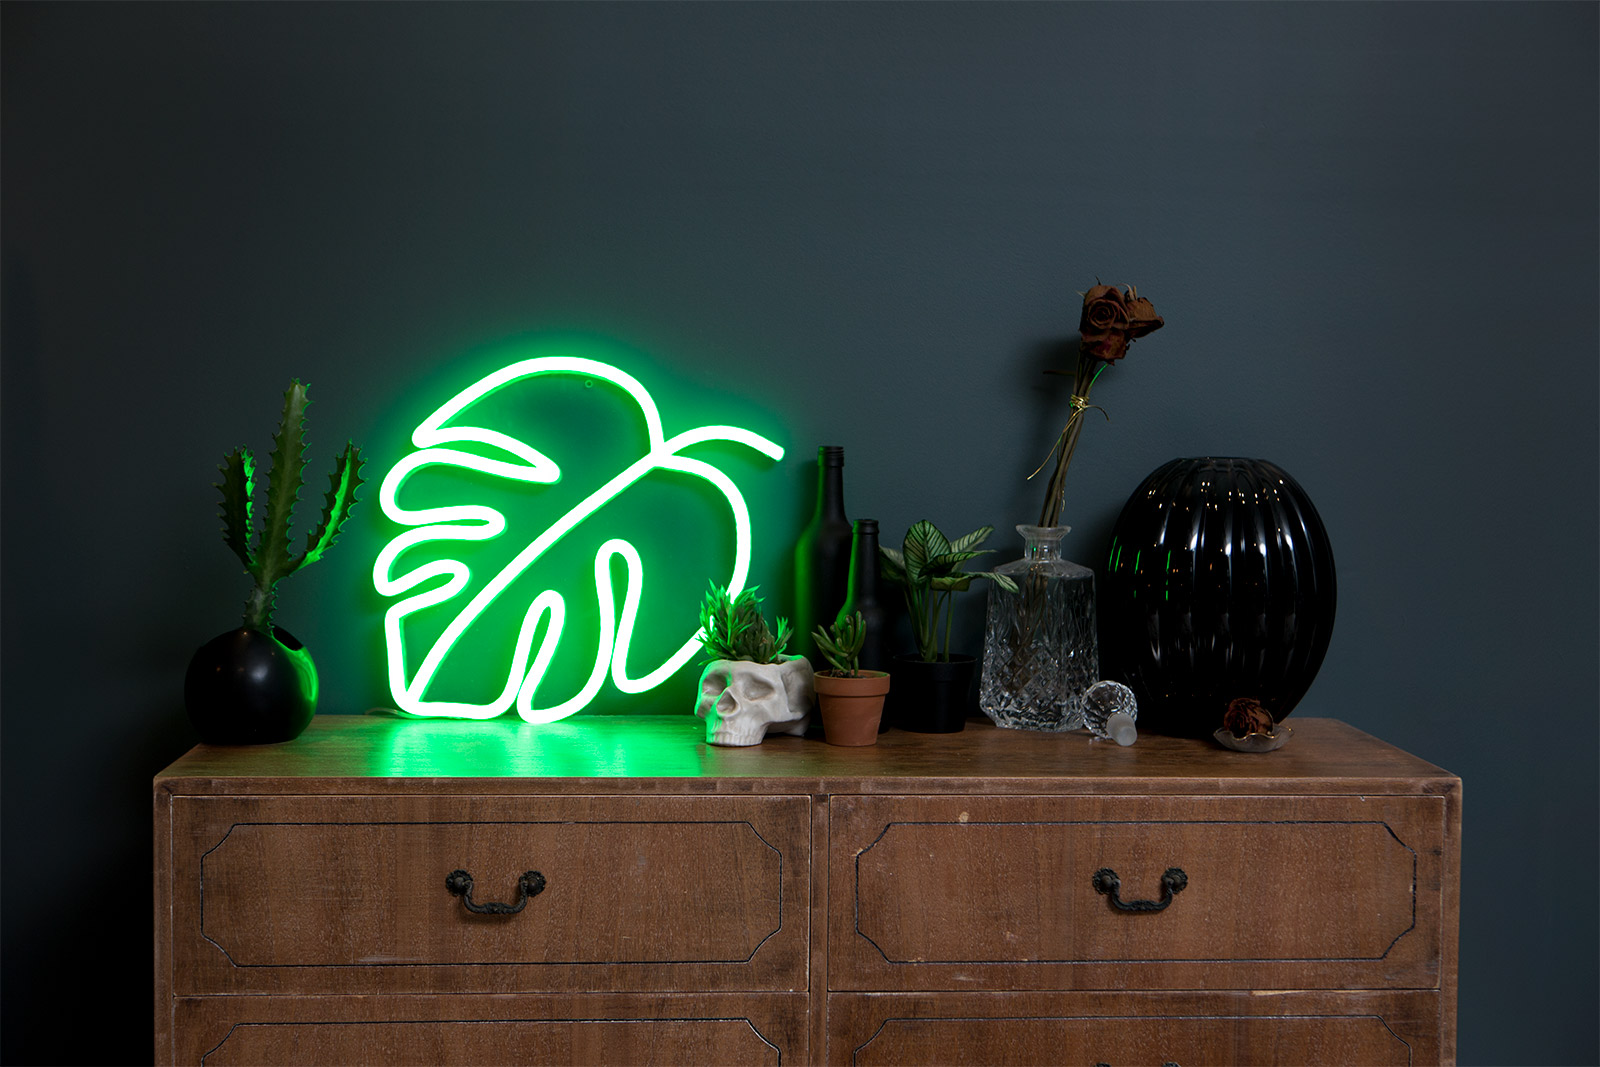 LED-neon-leaf-bedroom-plant-monstera-Panama